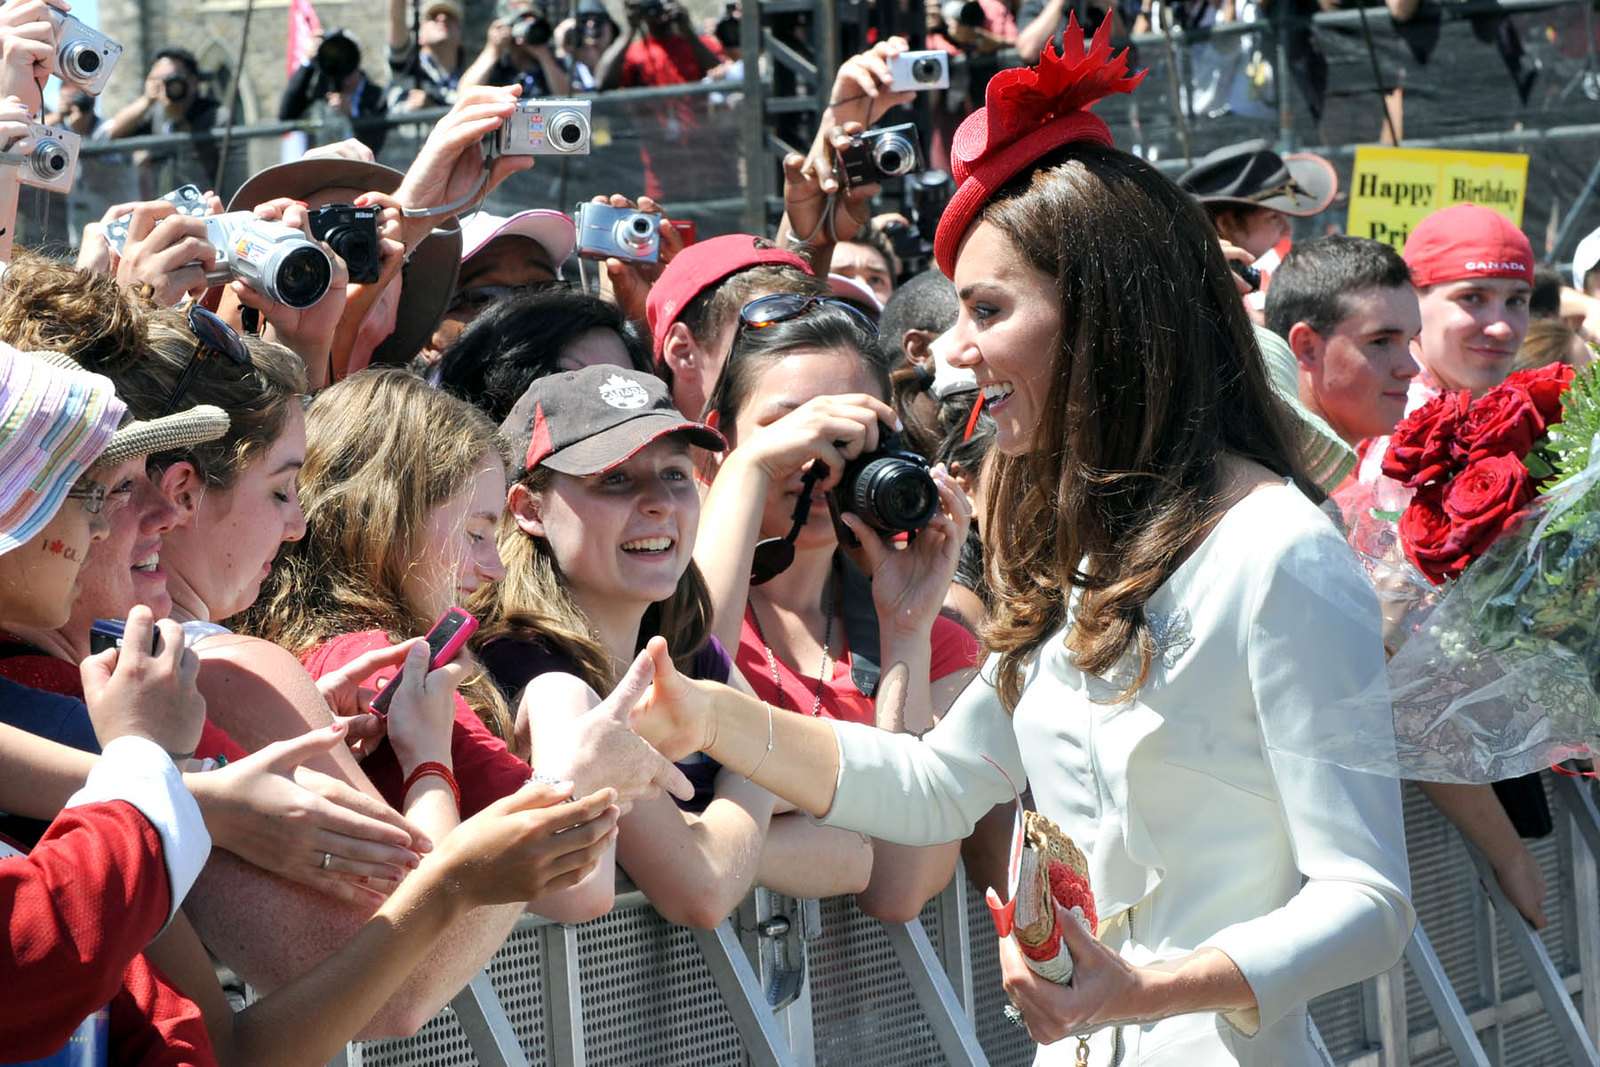 The Duchess of Cambridge meeting the public during the noon show on Canada day during royal tour in 2011